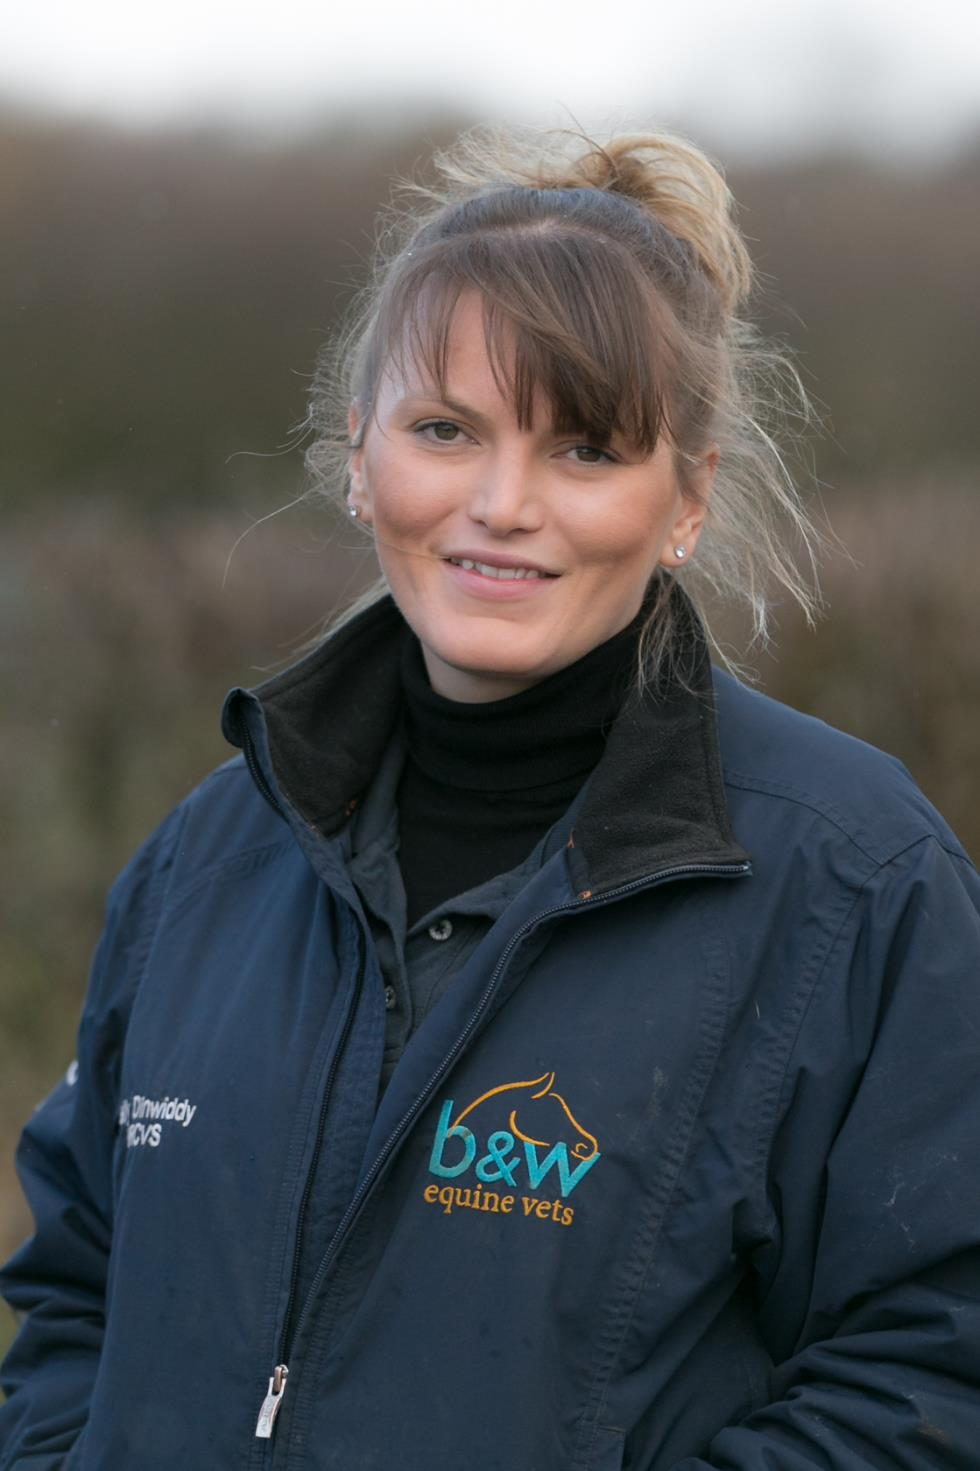 sally-mccartney-equine-vet